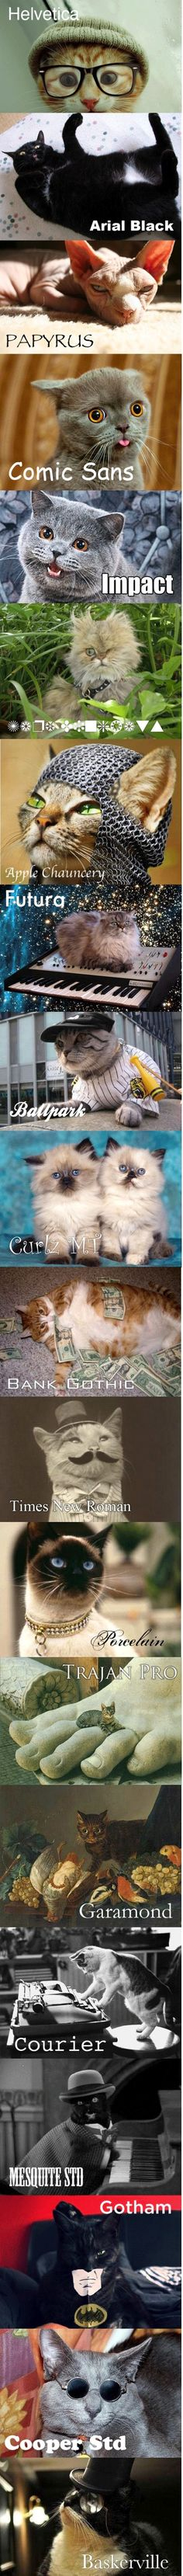 If fonts were cats